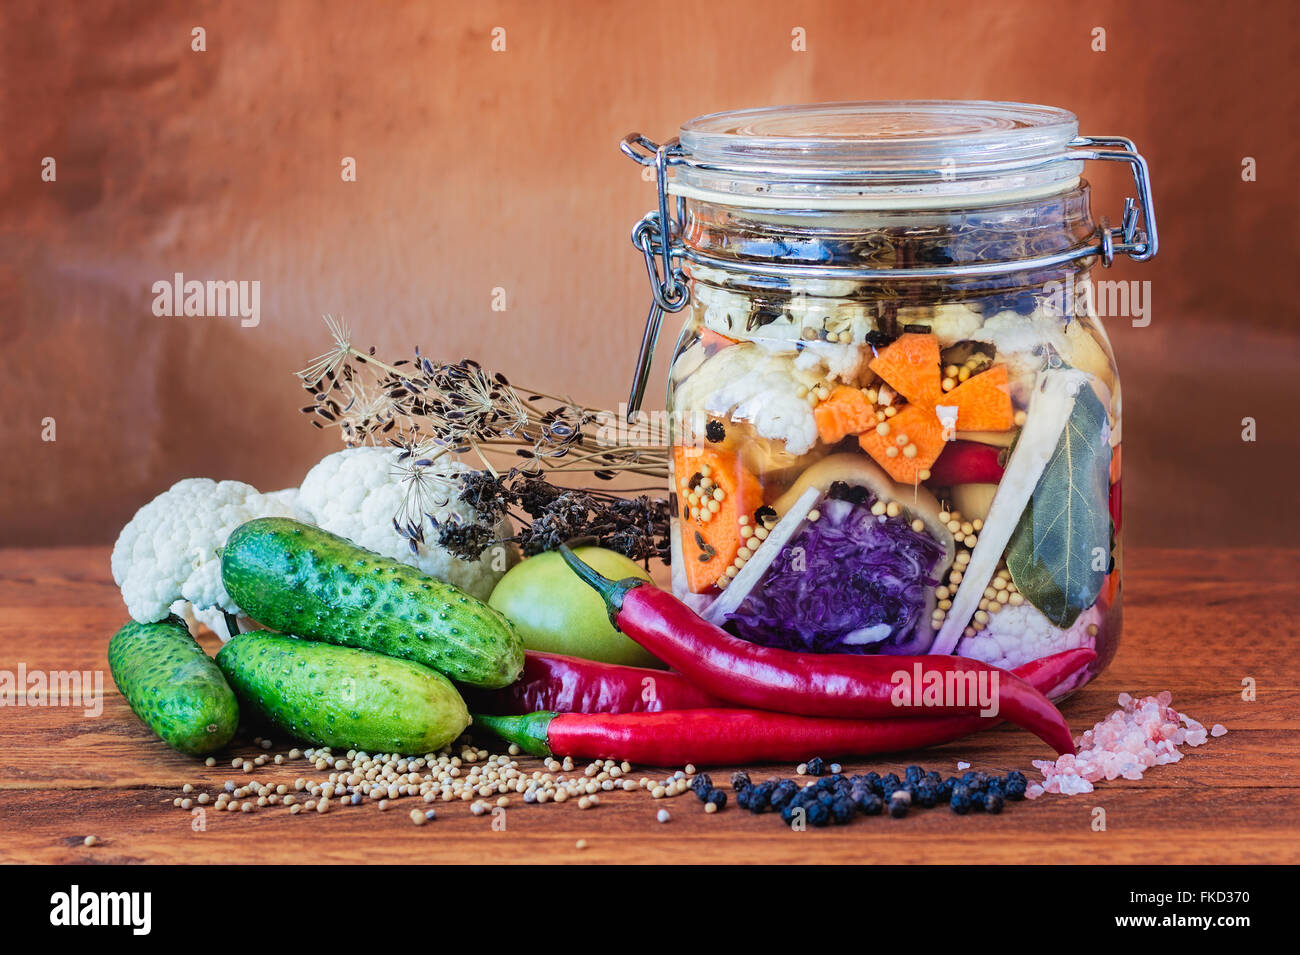 Jar of assorted brined lacto-fermented pickles on a wooden table surrounded by vegetables and spices. - Stock Image